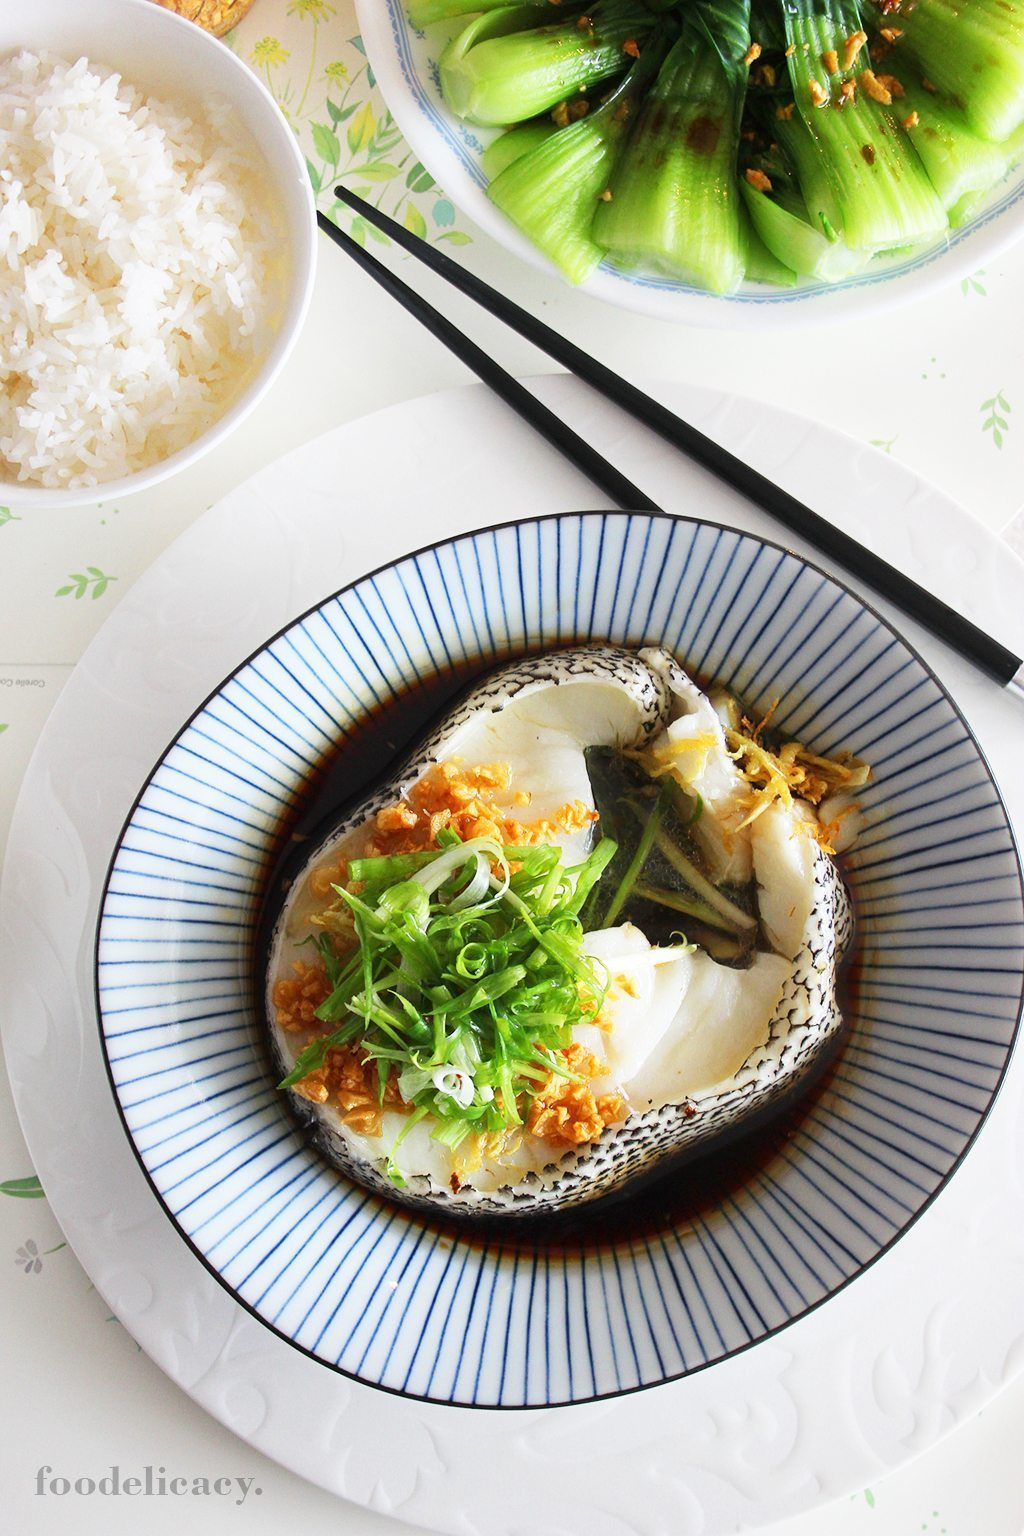 Steamed_Cod_Fish_1A